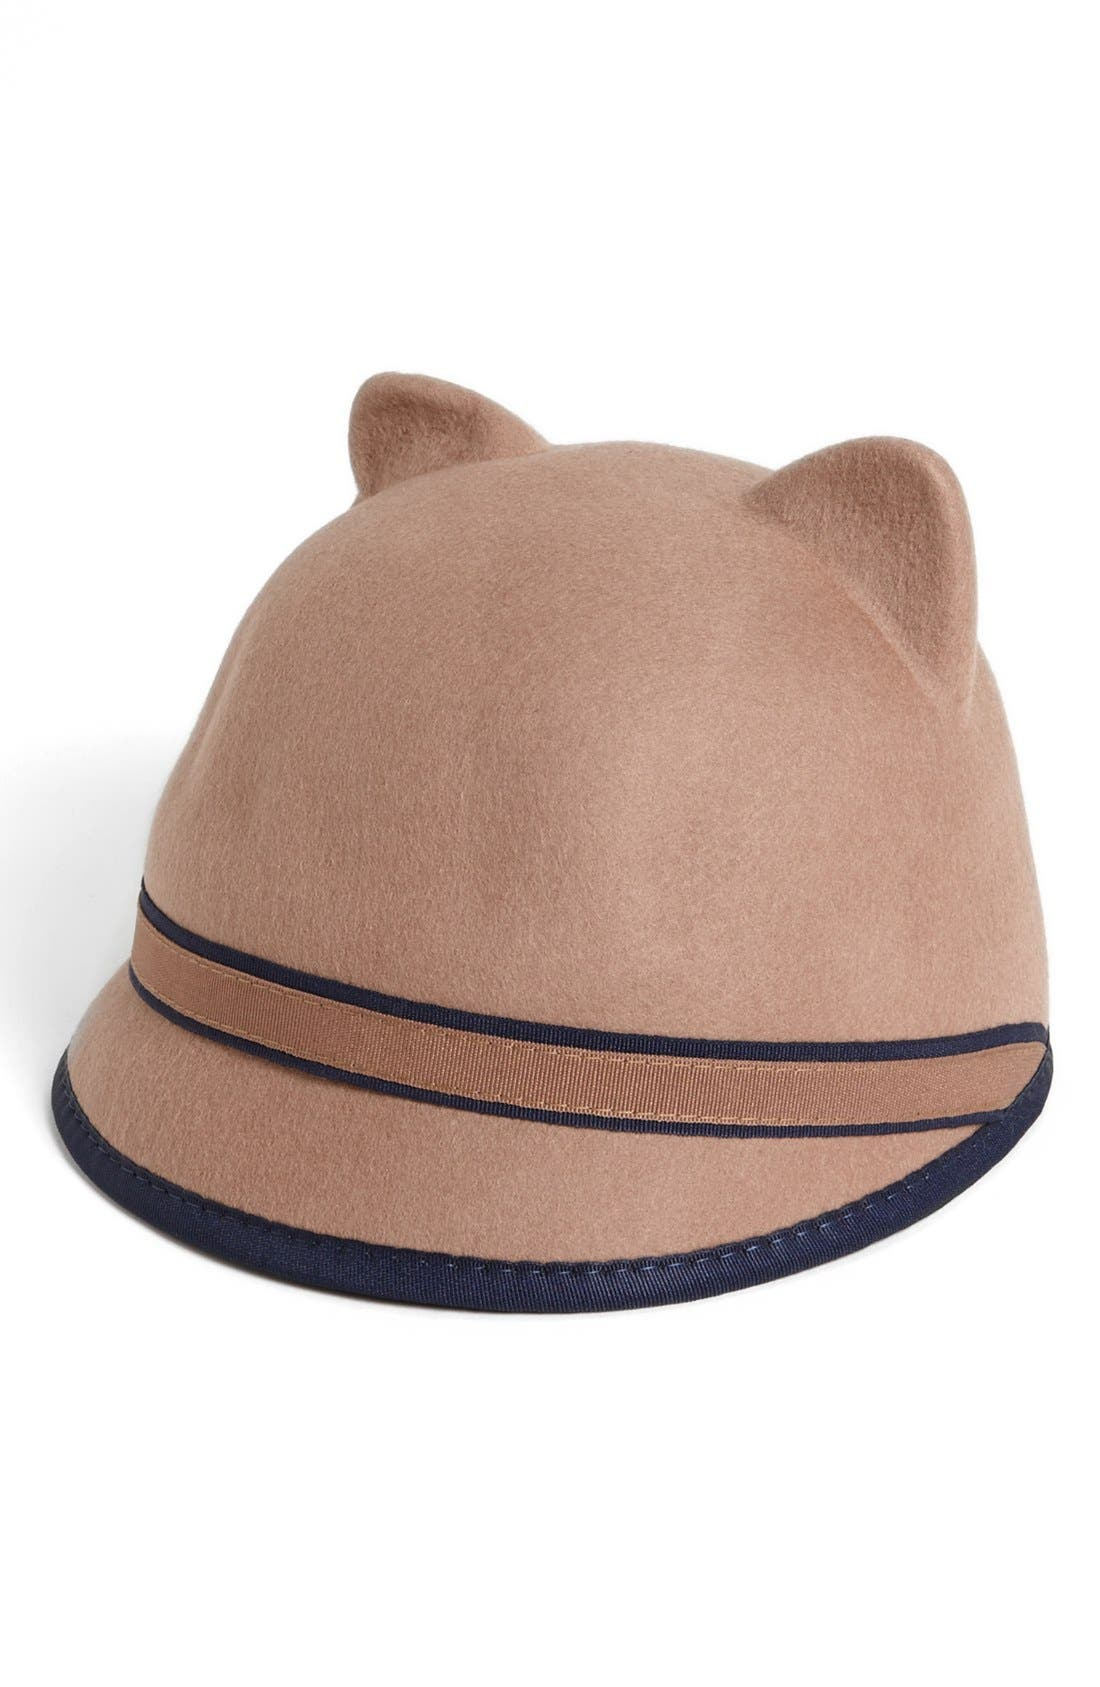 Main Image - BCBGMAXAZRIA Kitty Cat Baseball Cap